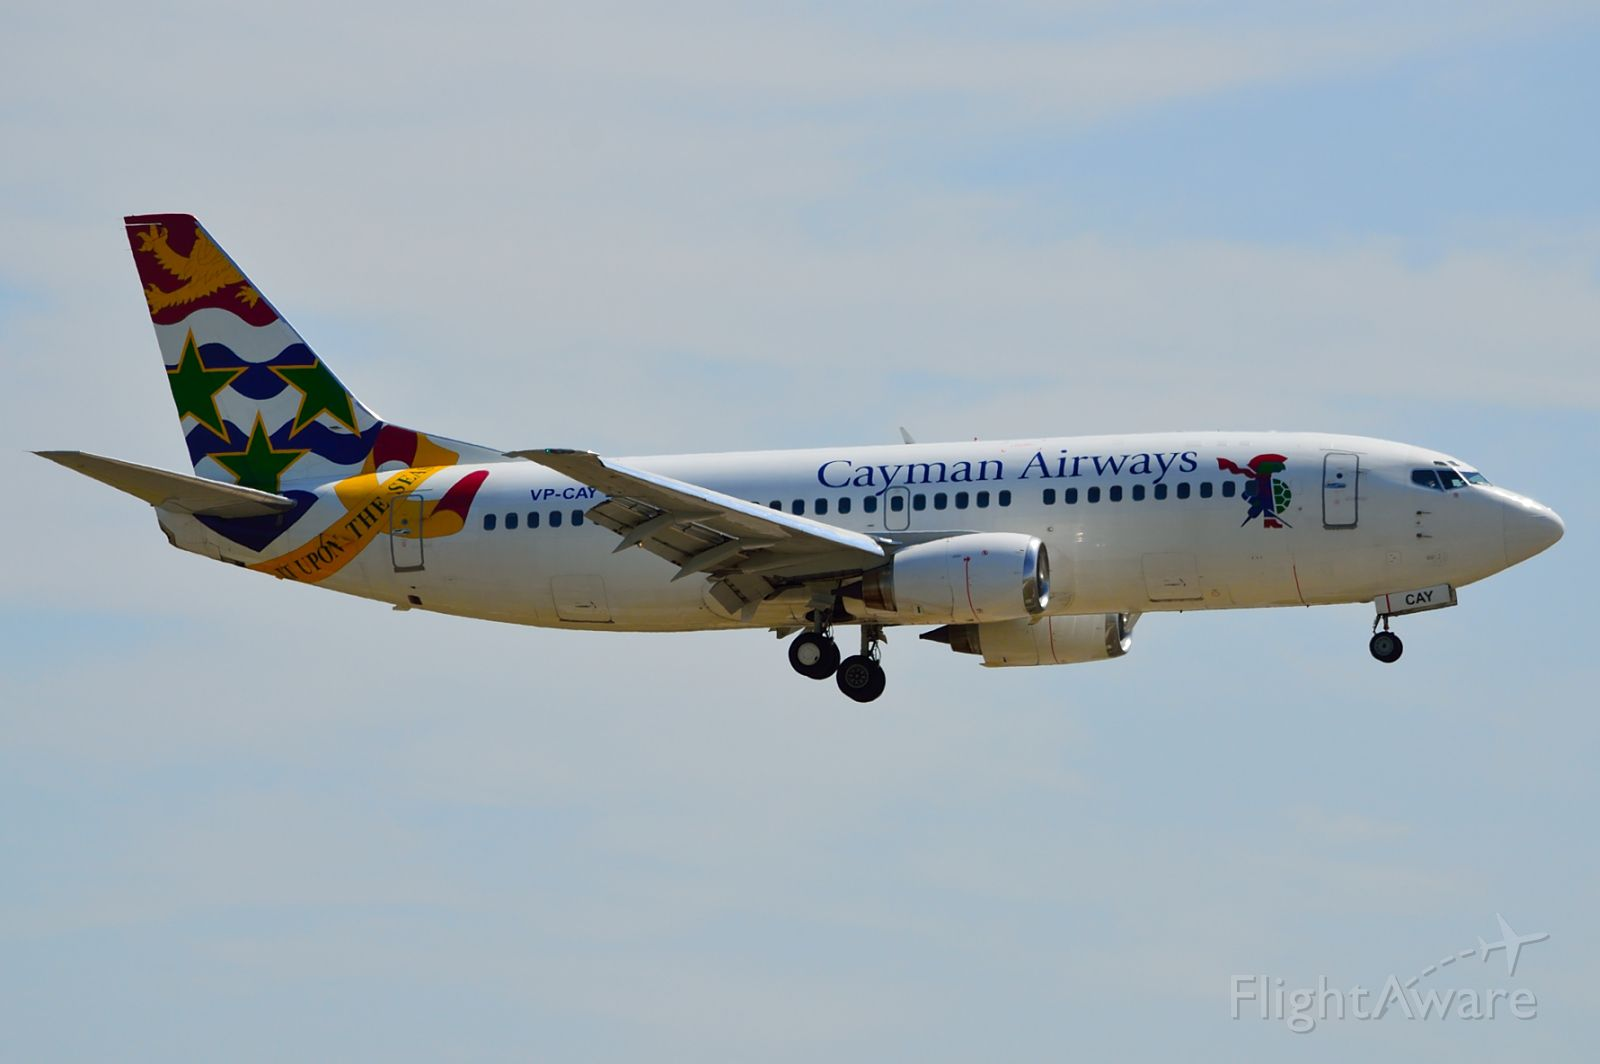 BOEING 737-300 (VP-CAY) - Cayman Airways B737-300 VP-CAY Arriving KDFW 08/21/2013